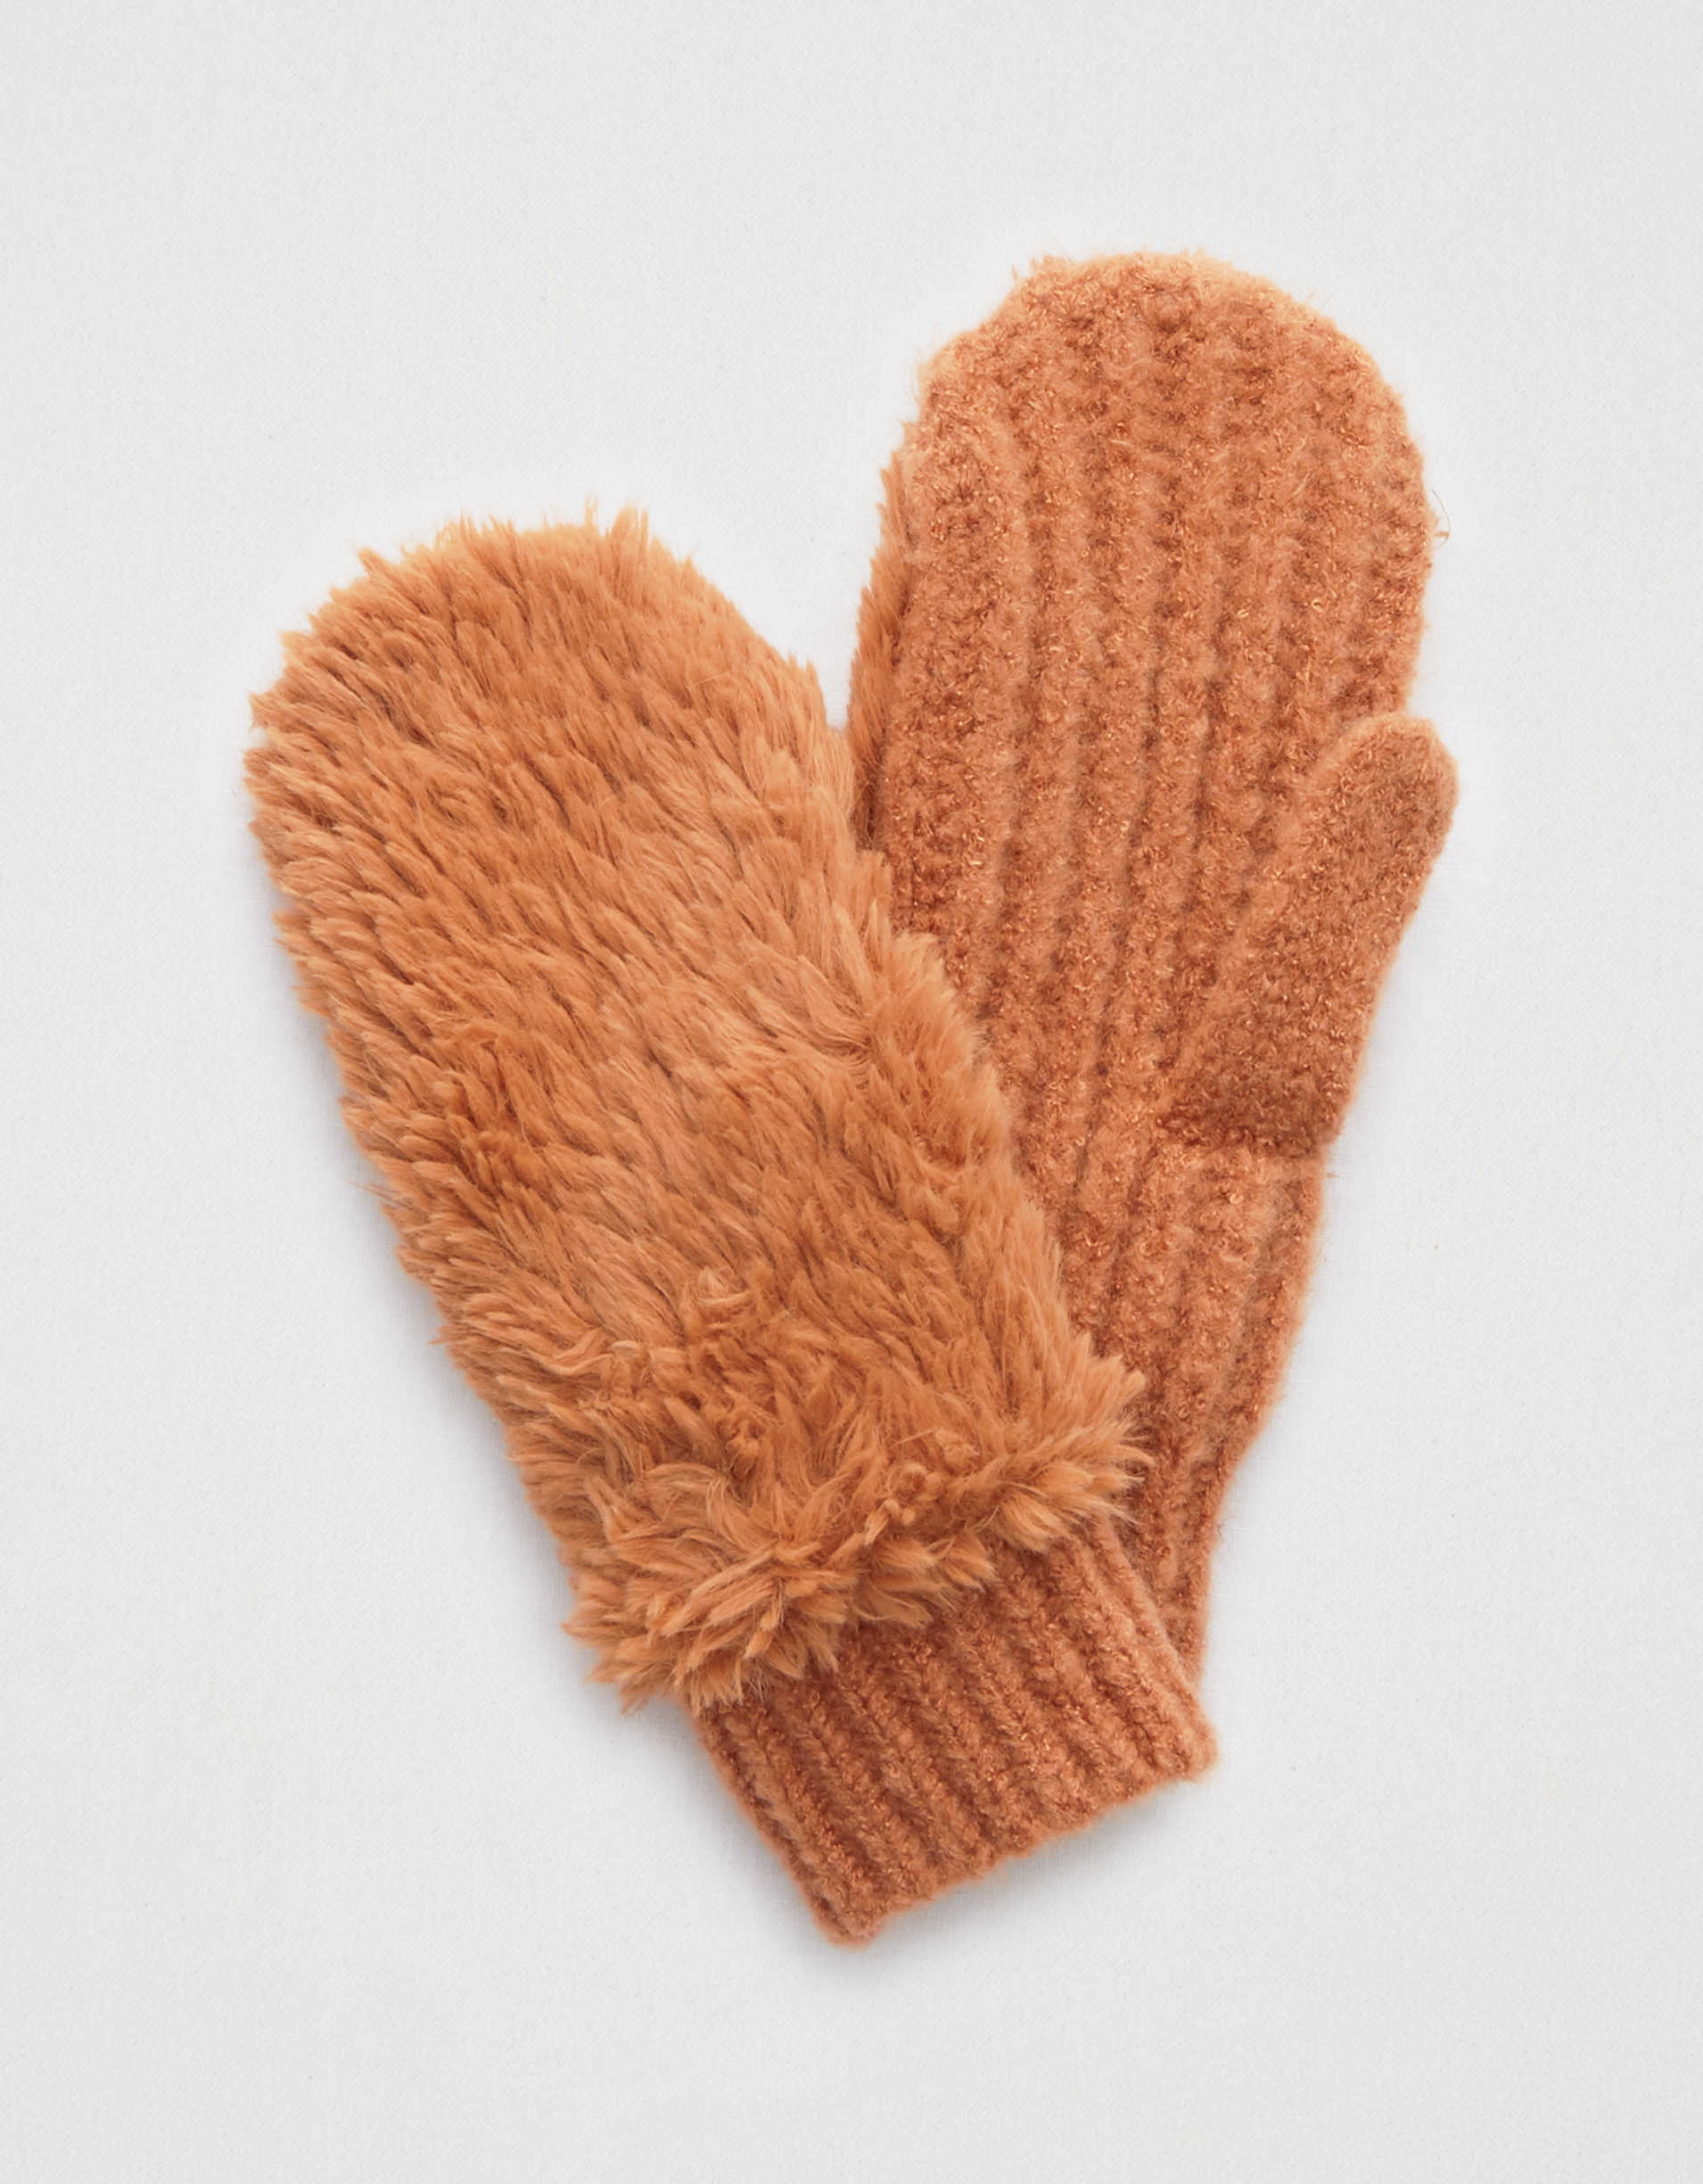 Aerie Sherpa Knit Mittens